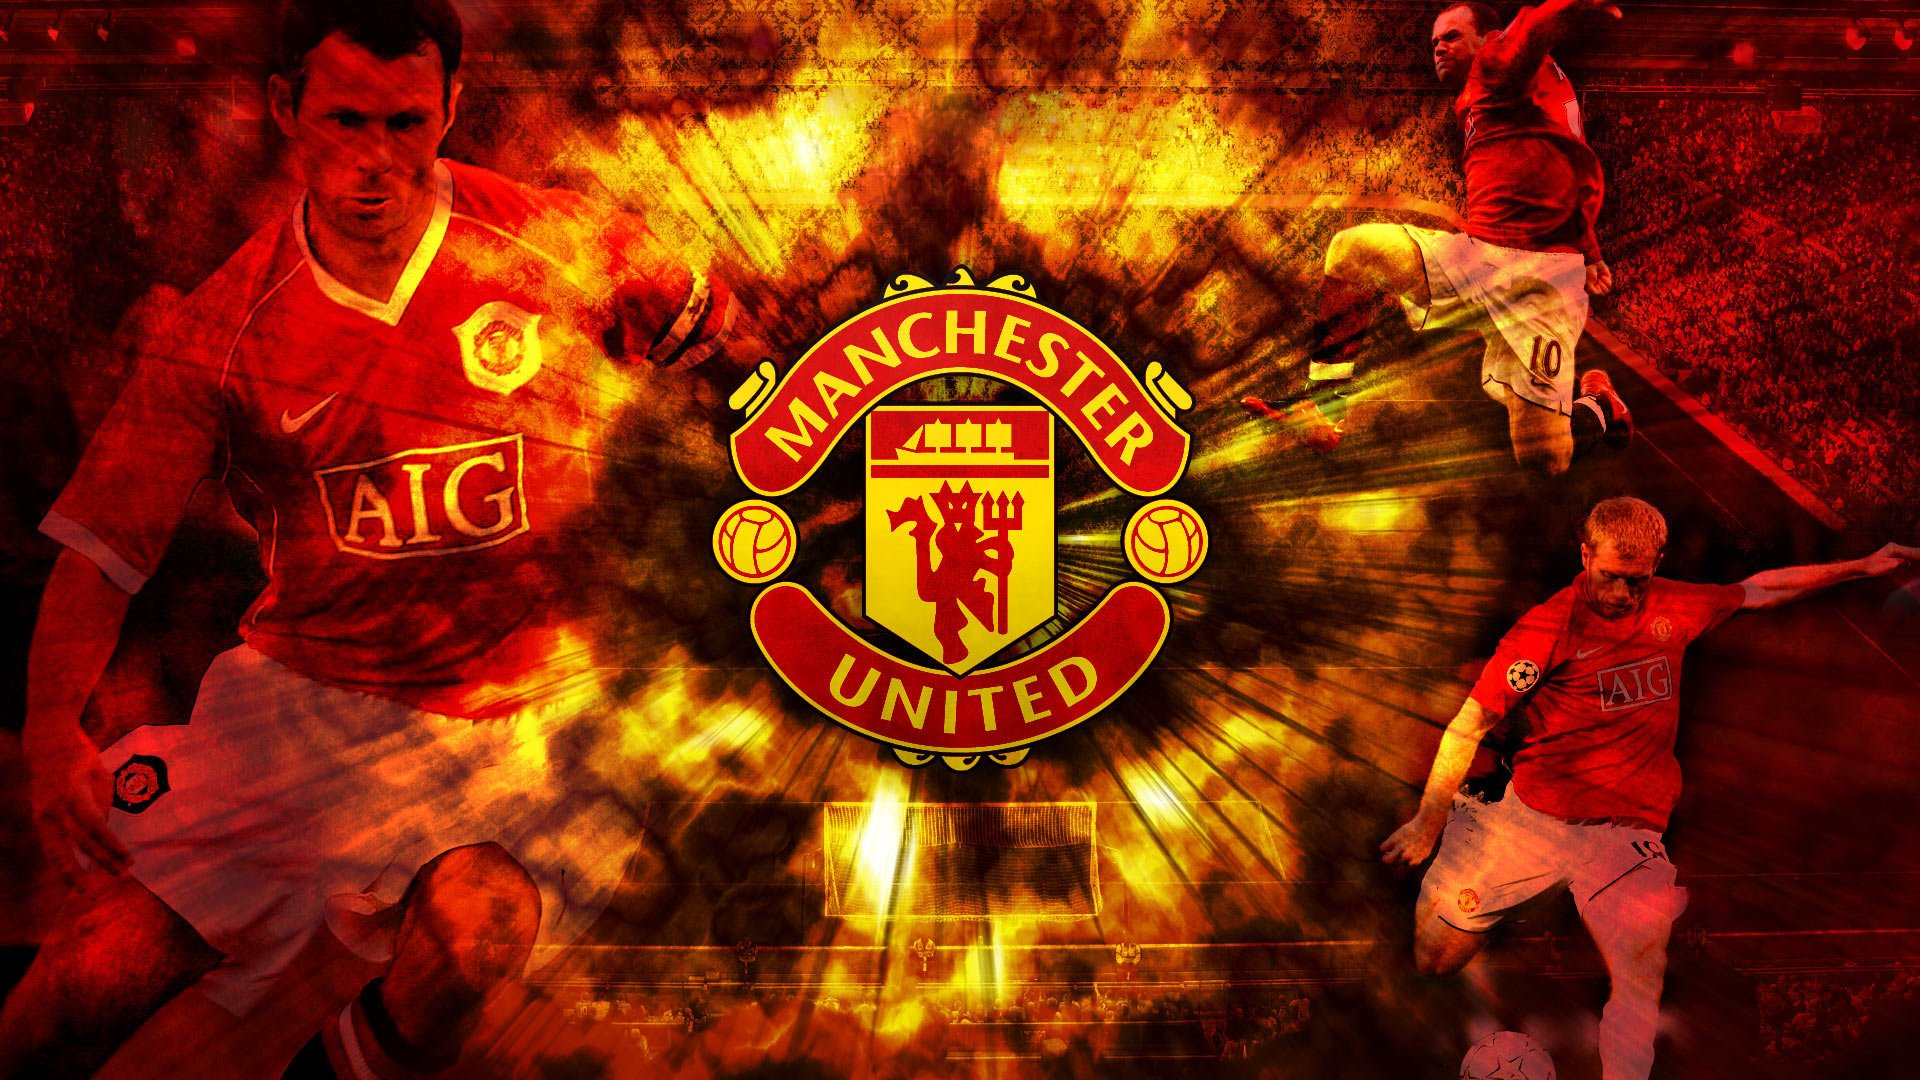 3 manchester united fc hd wallpapers background images manchester united hd wallpaper background image id740337 voltagebd Images